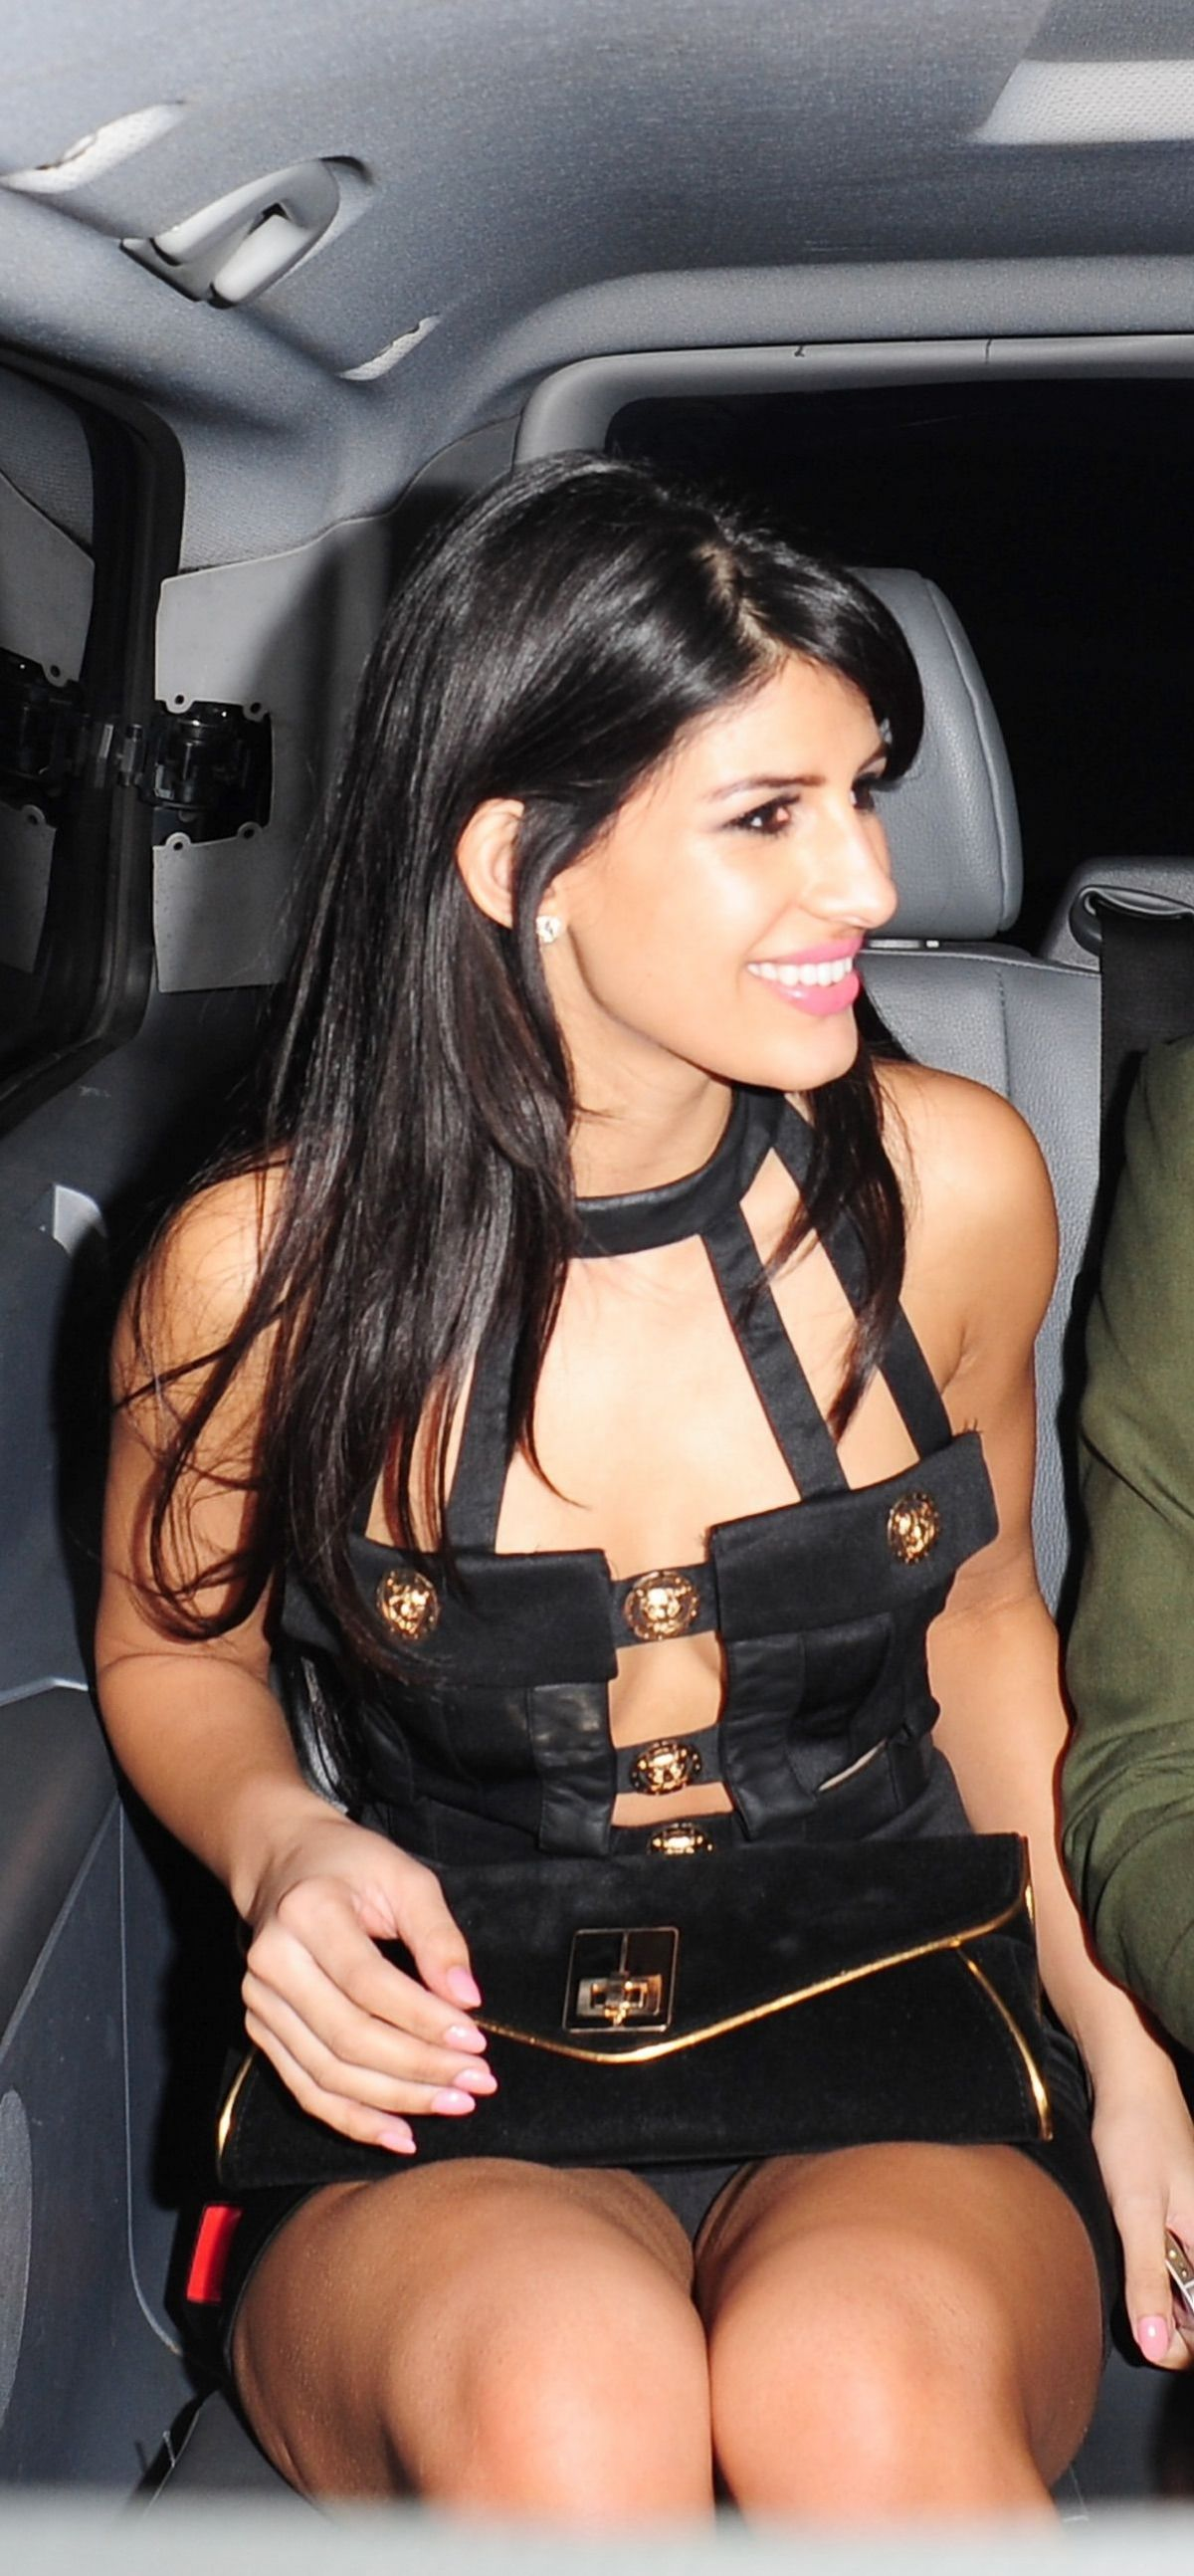 jasmin-walia-at-national-television-awards-after-party_4.jpg - 319.27 KB